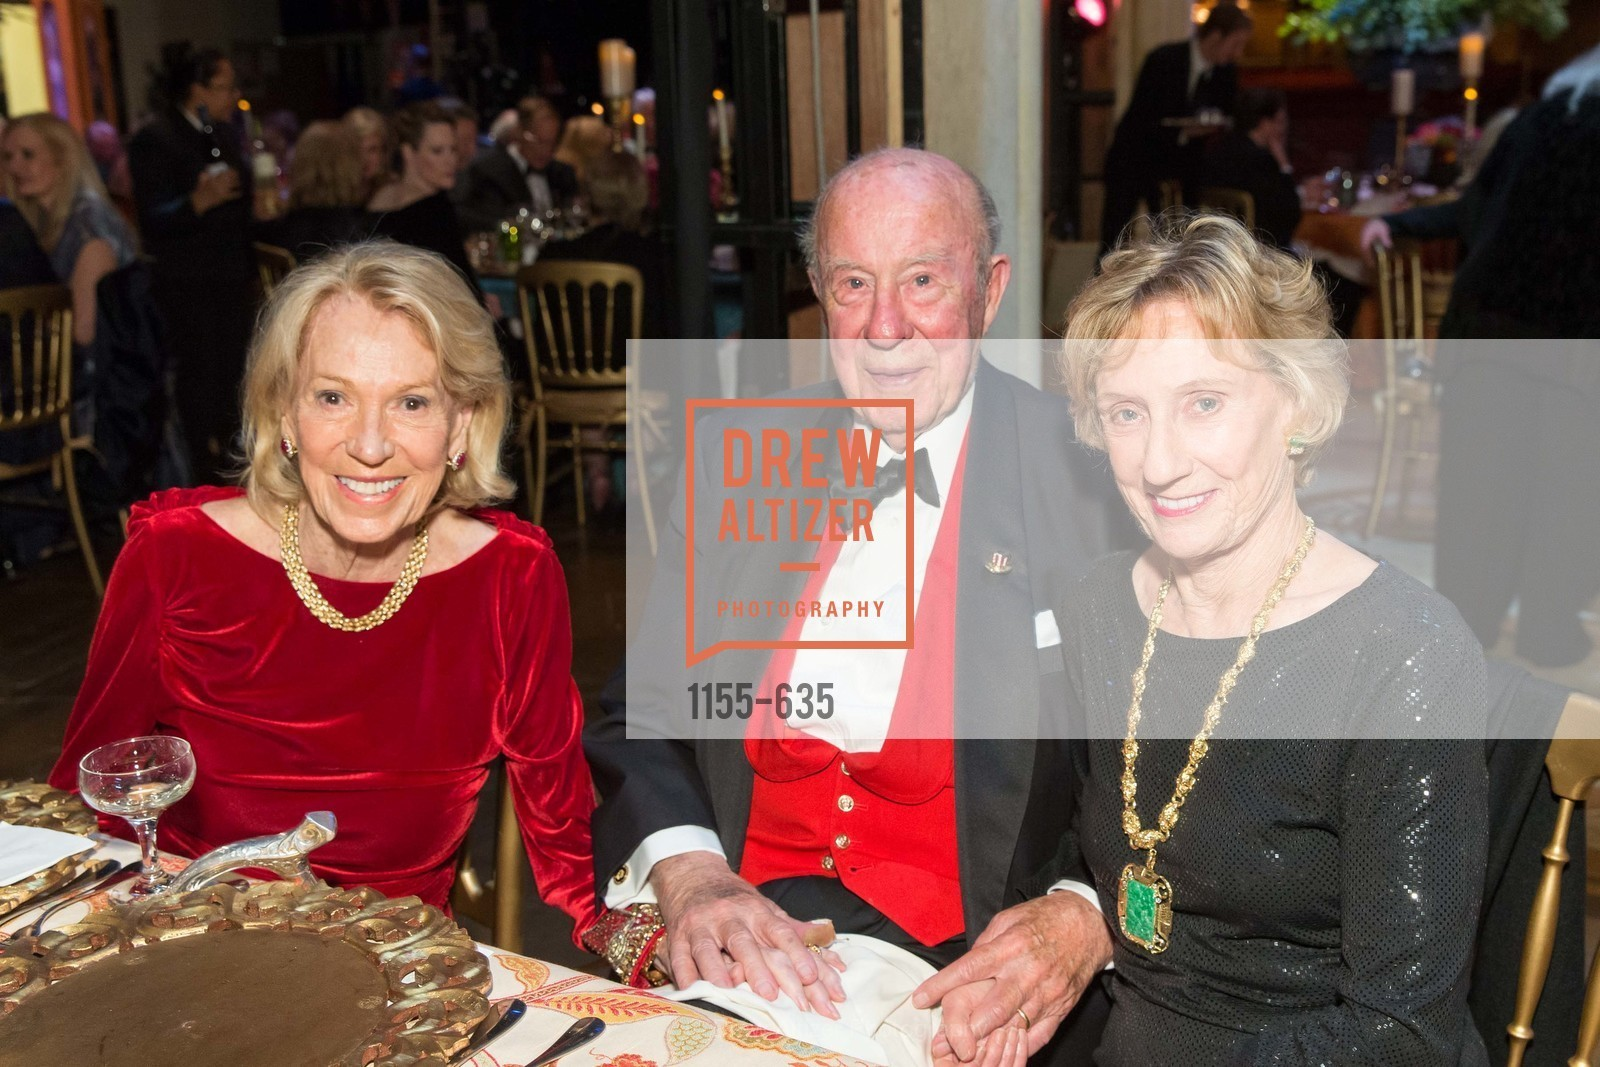 Charlotte Shultz, George Shultz, Nancy Bechtle, Photo #1155-635